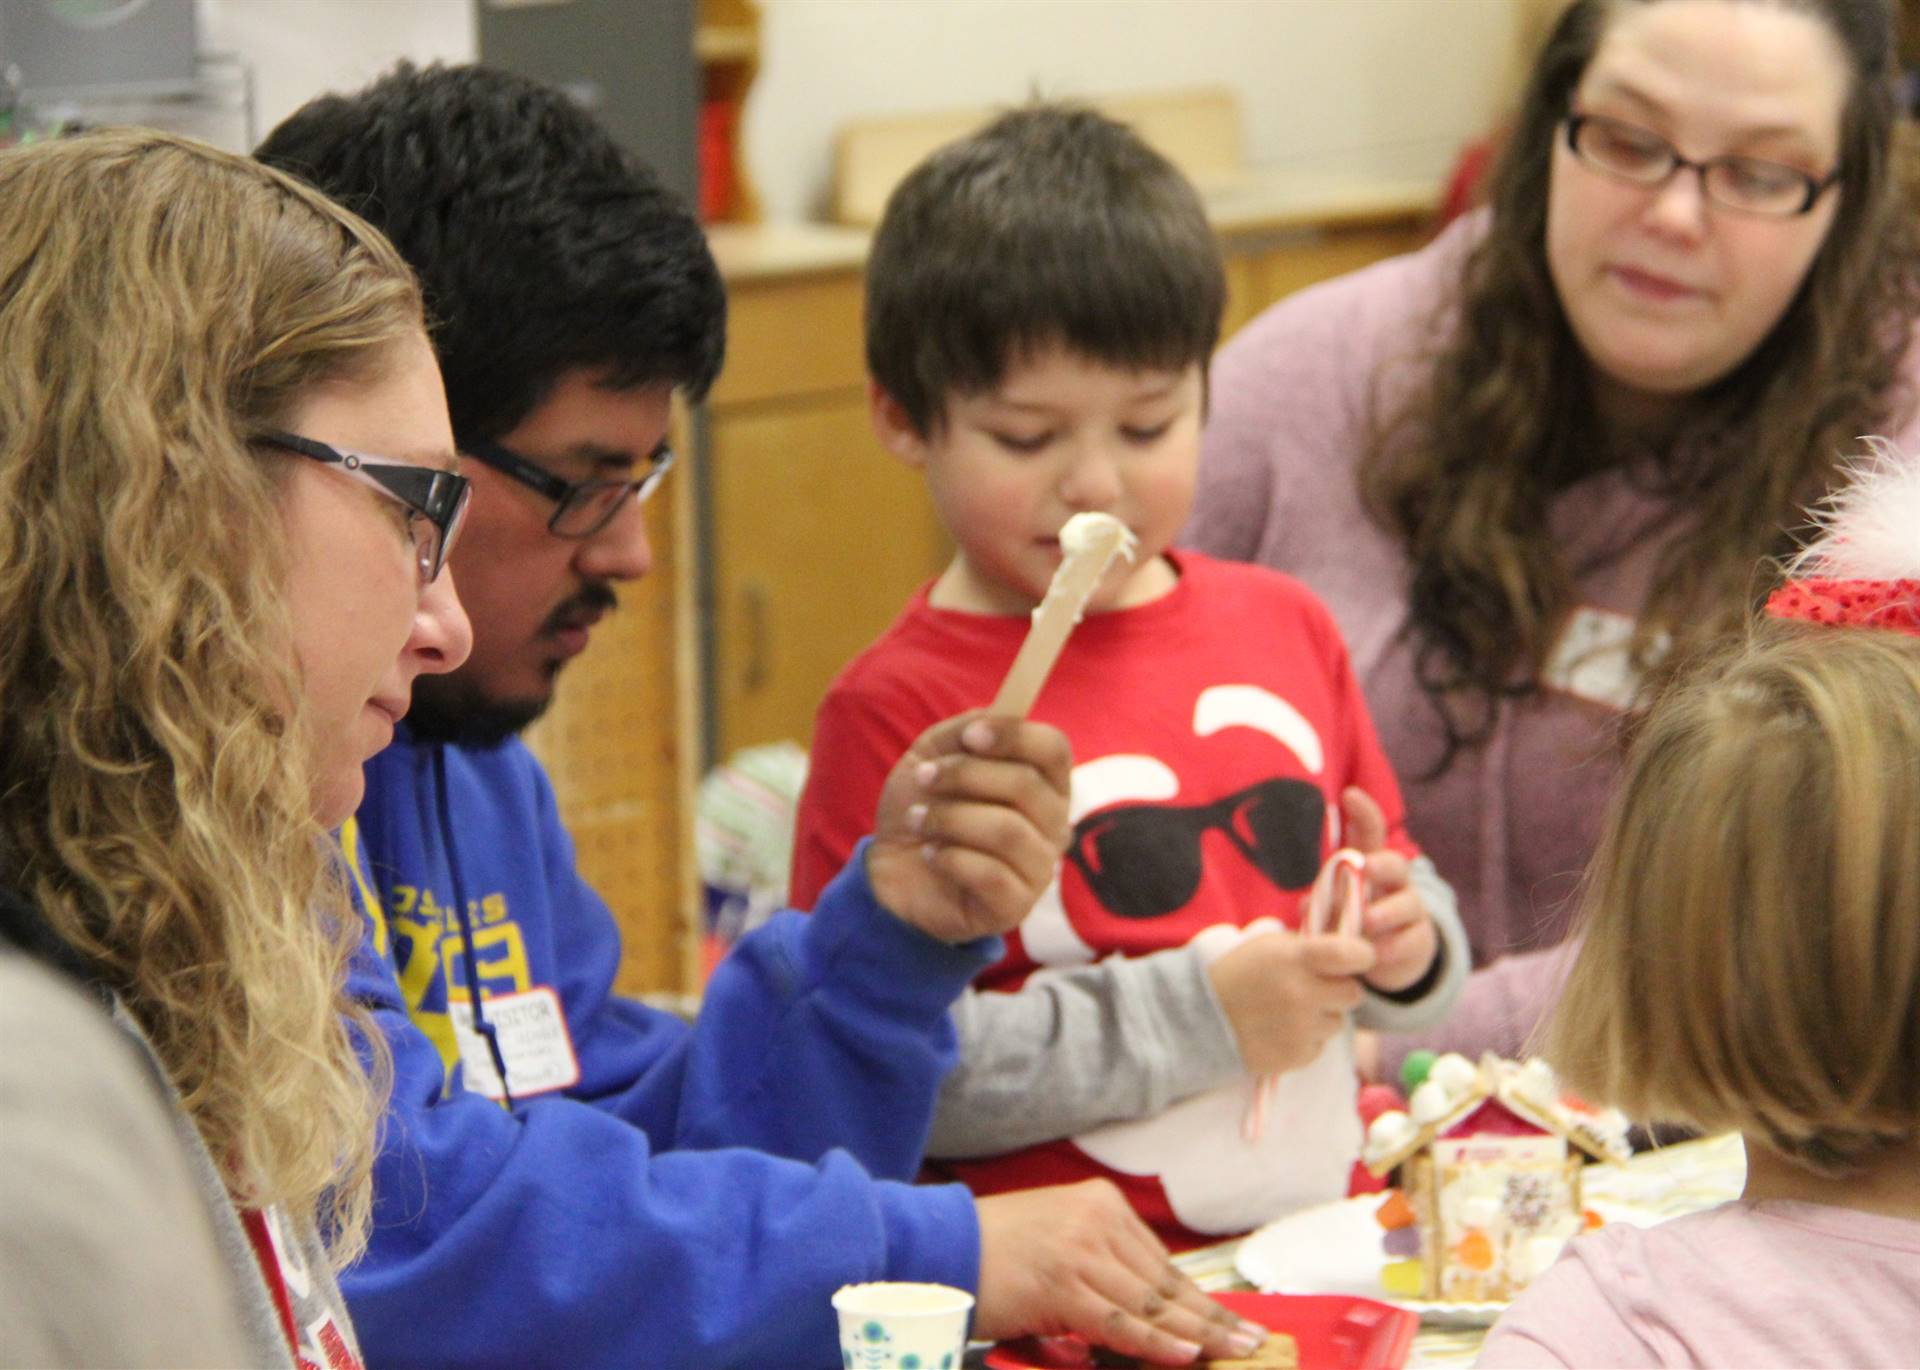 students and adults decorating gingerbread creations